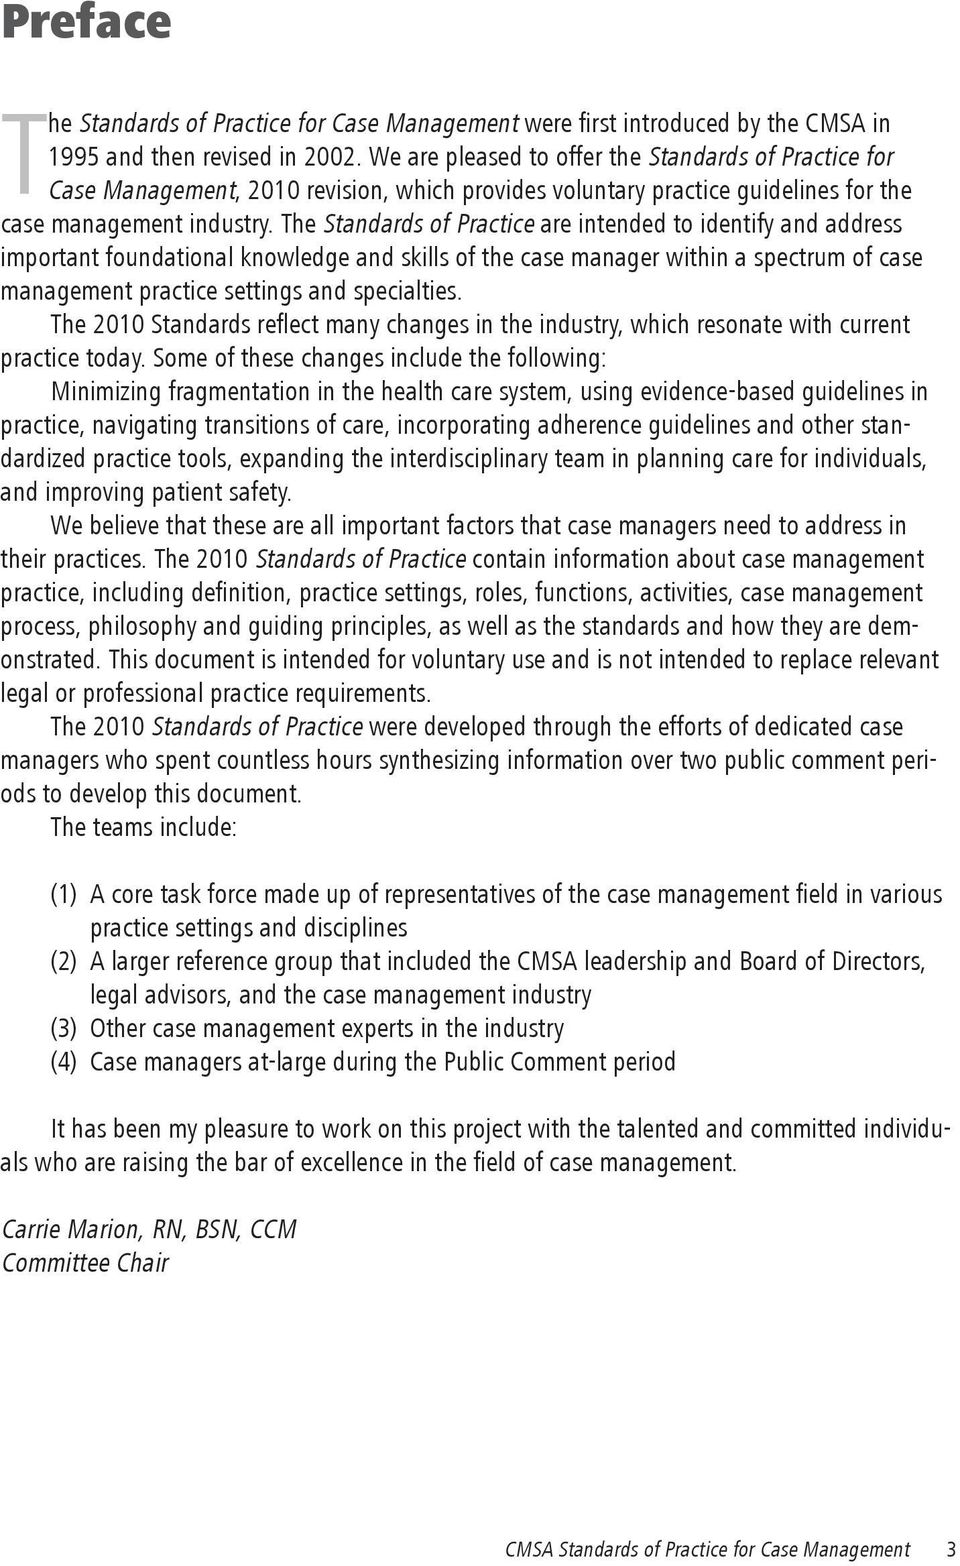 The Standards of Practice are intended to identify and address important foundational knowledge and skills of the case manager within a spectrum of case management practice settings and specialties.